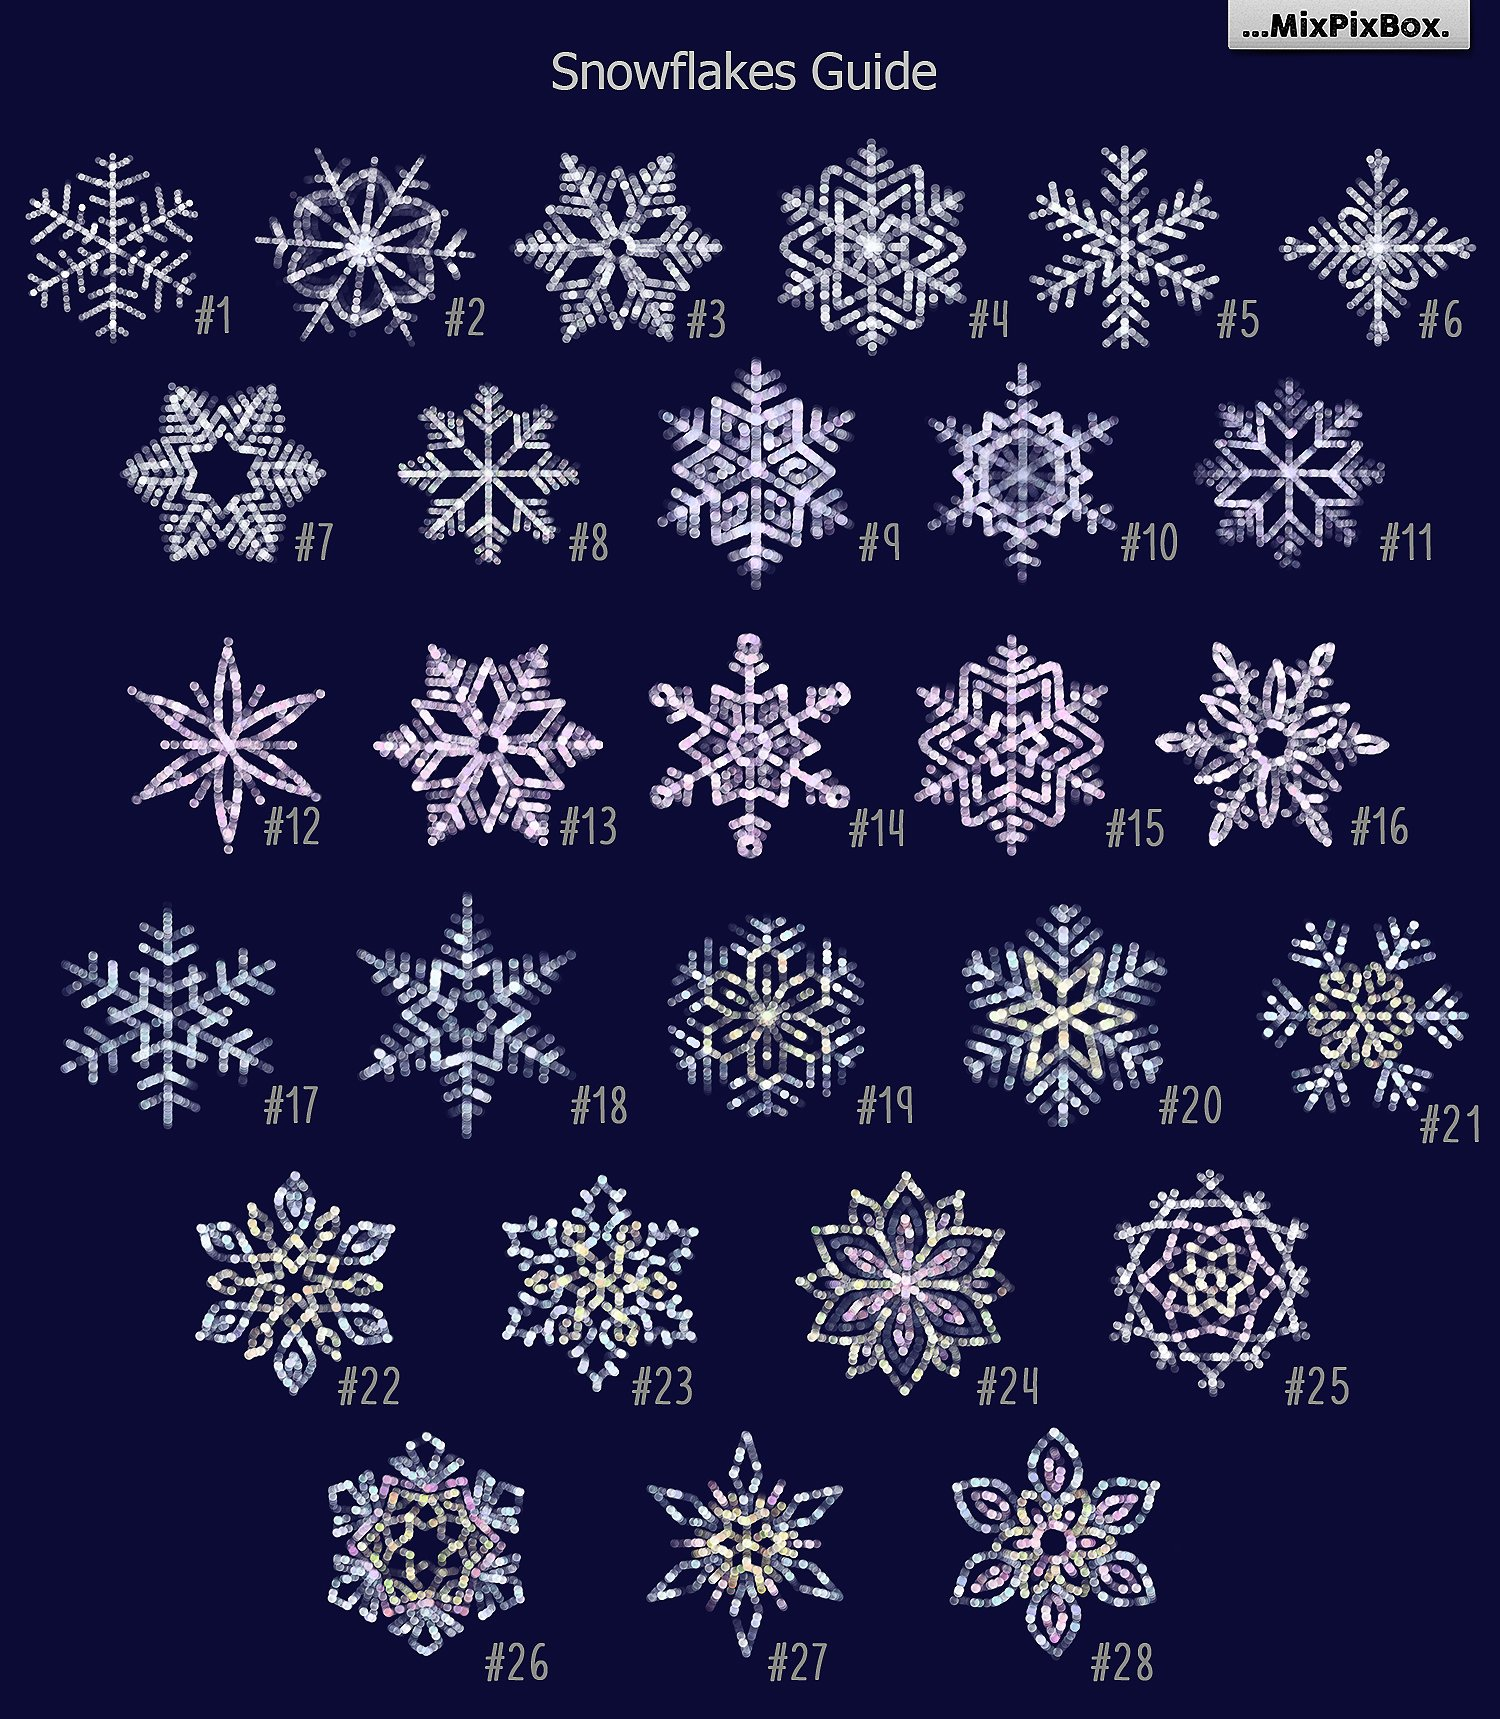 28 Snowflakes Photo Overlays - $8 - 1 9